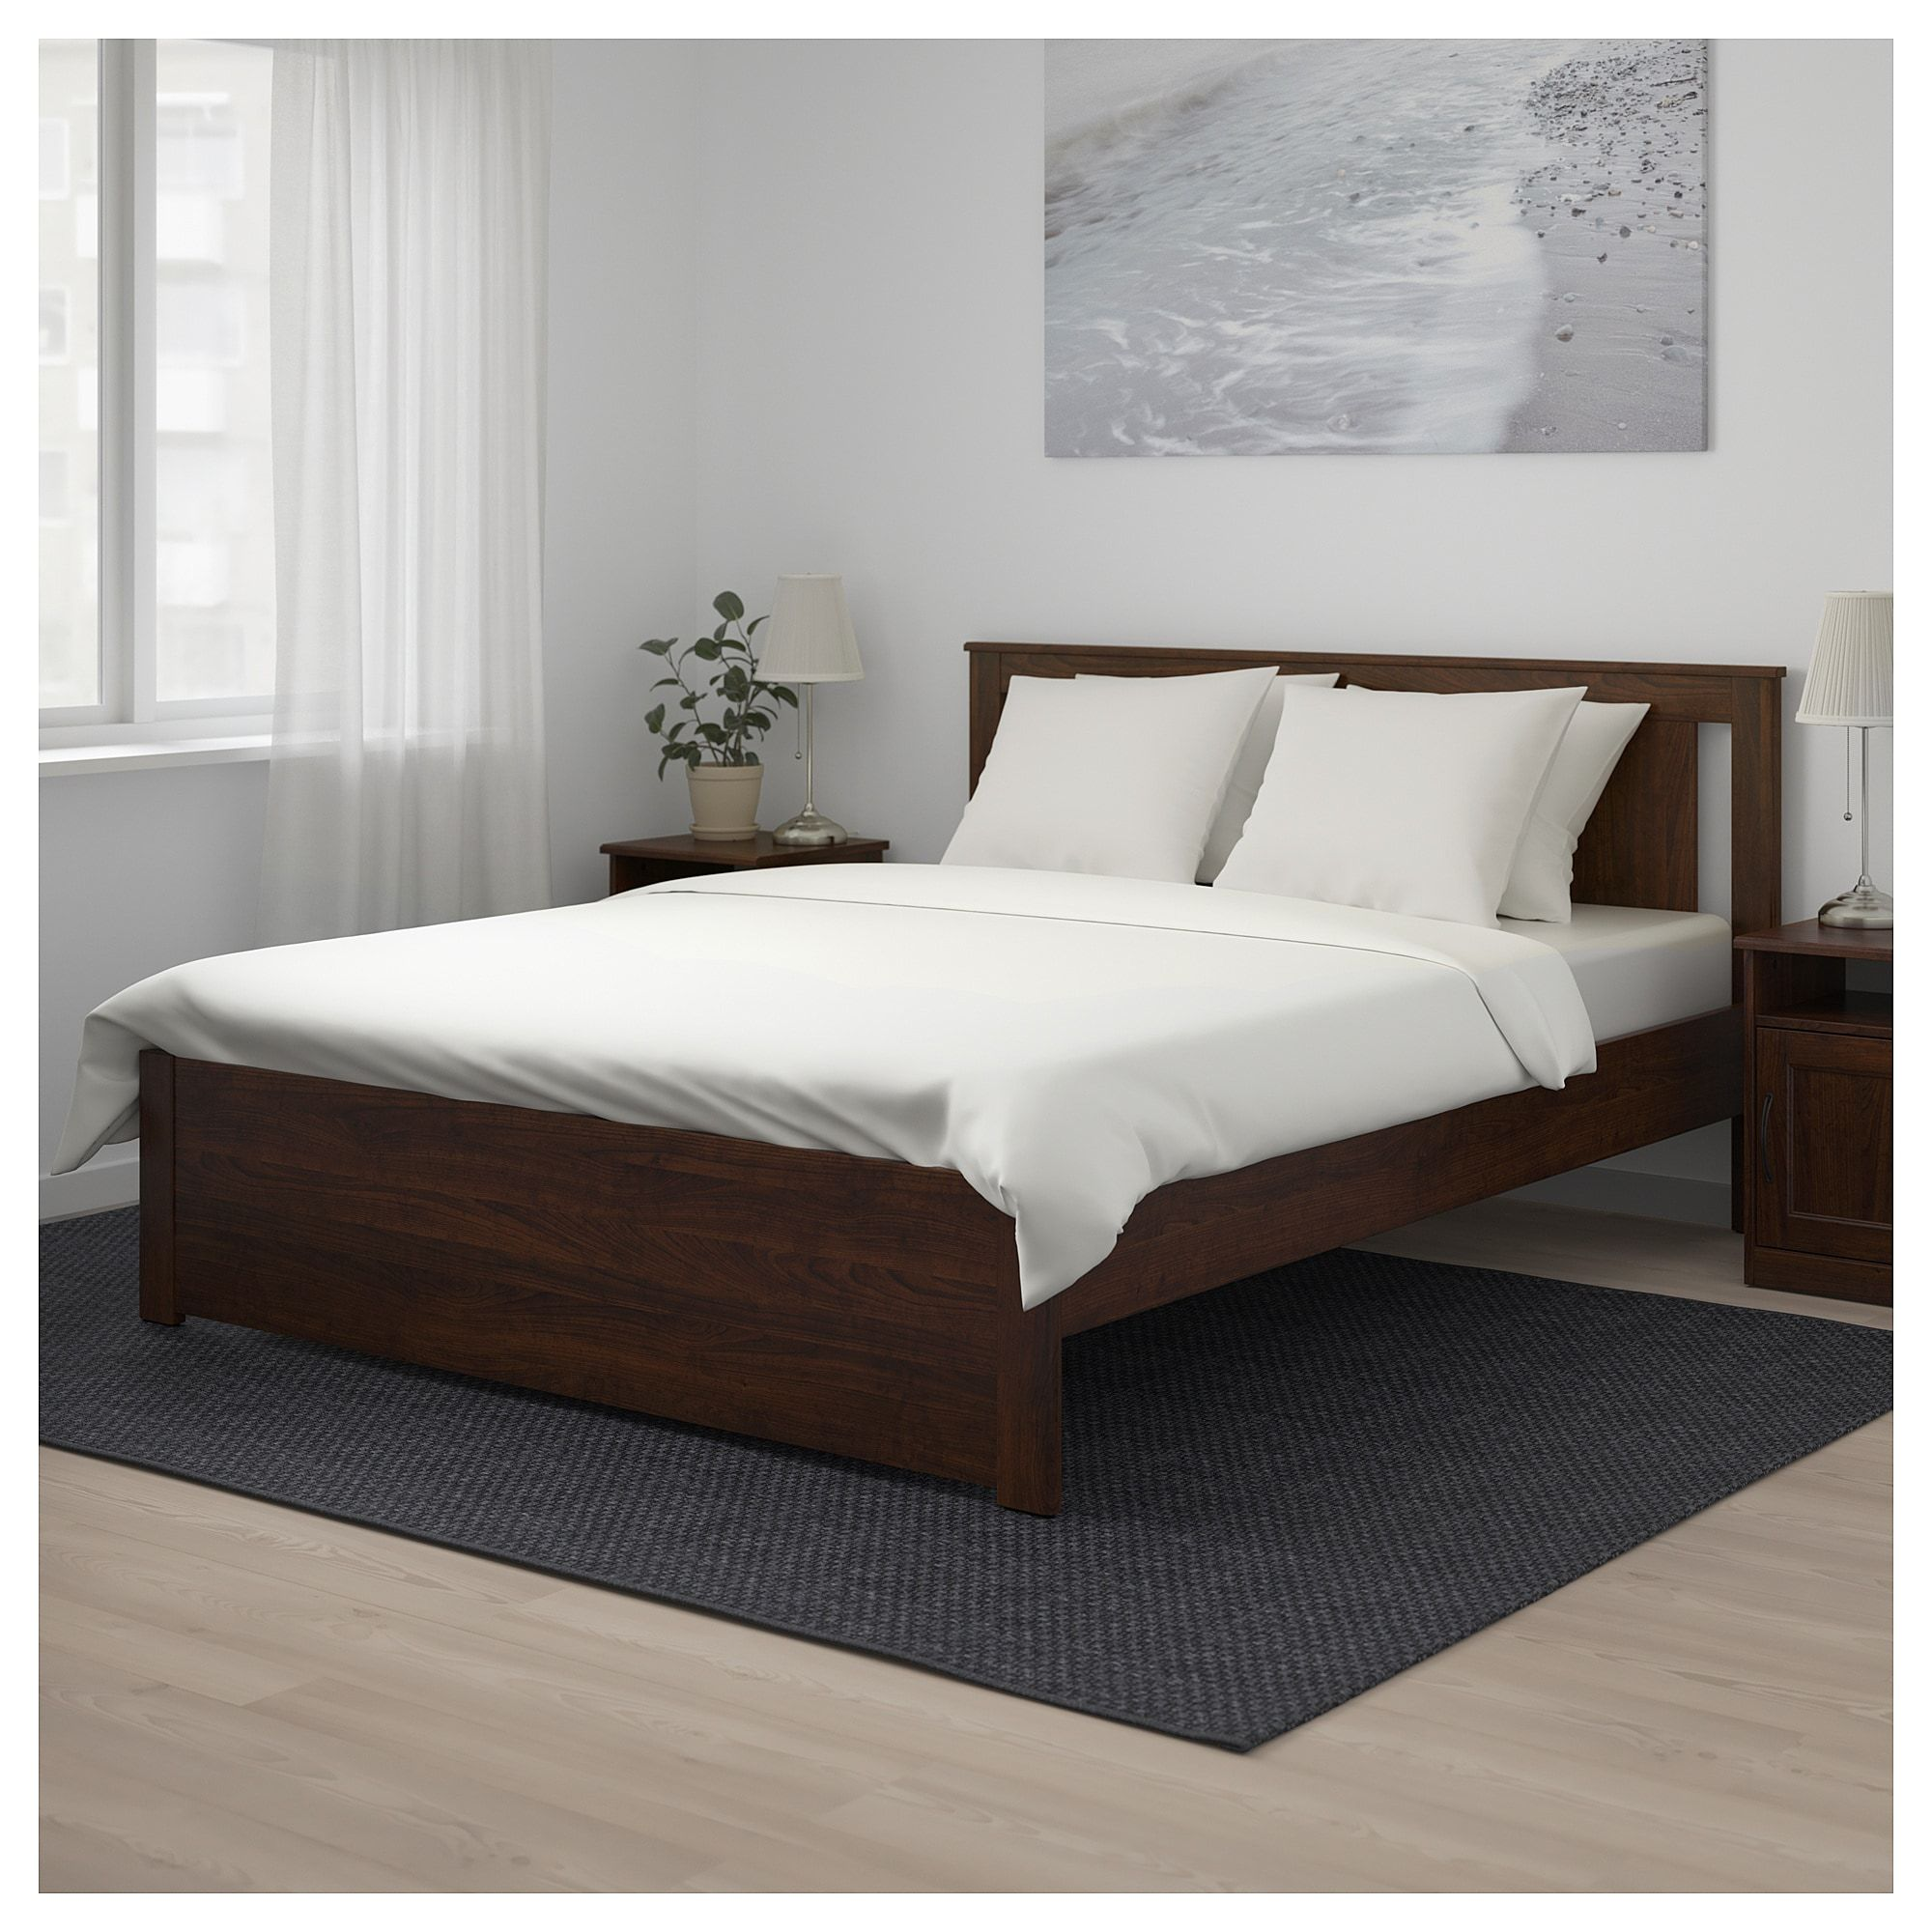 Songesand Bed Frame Brown Luroy Full Double In 2020 Bed Frame